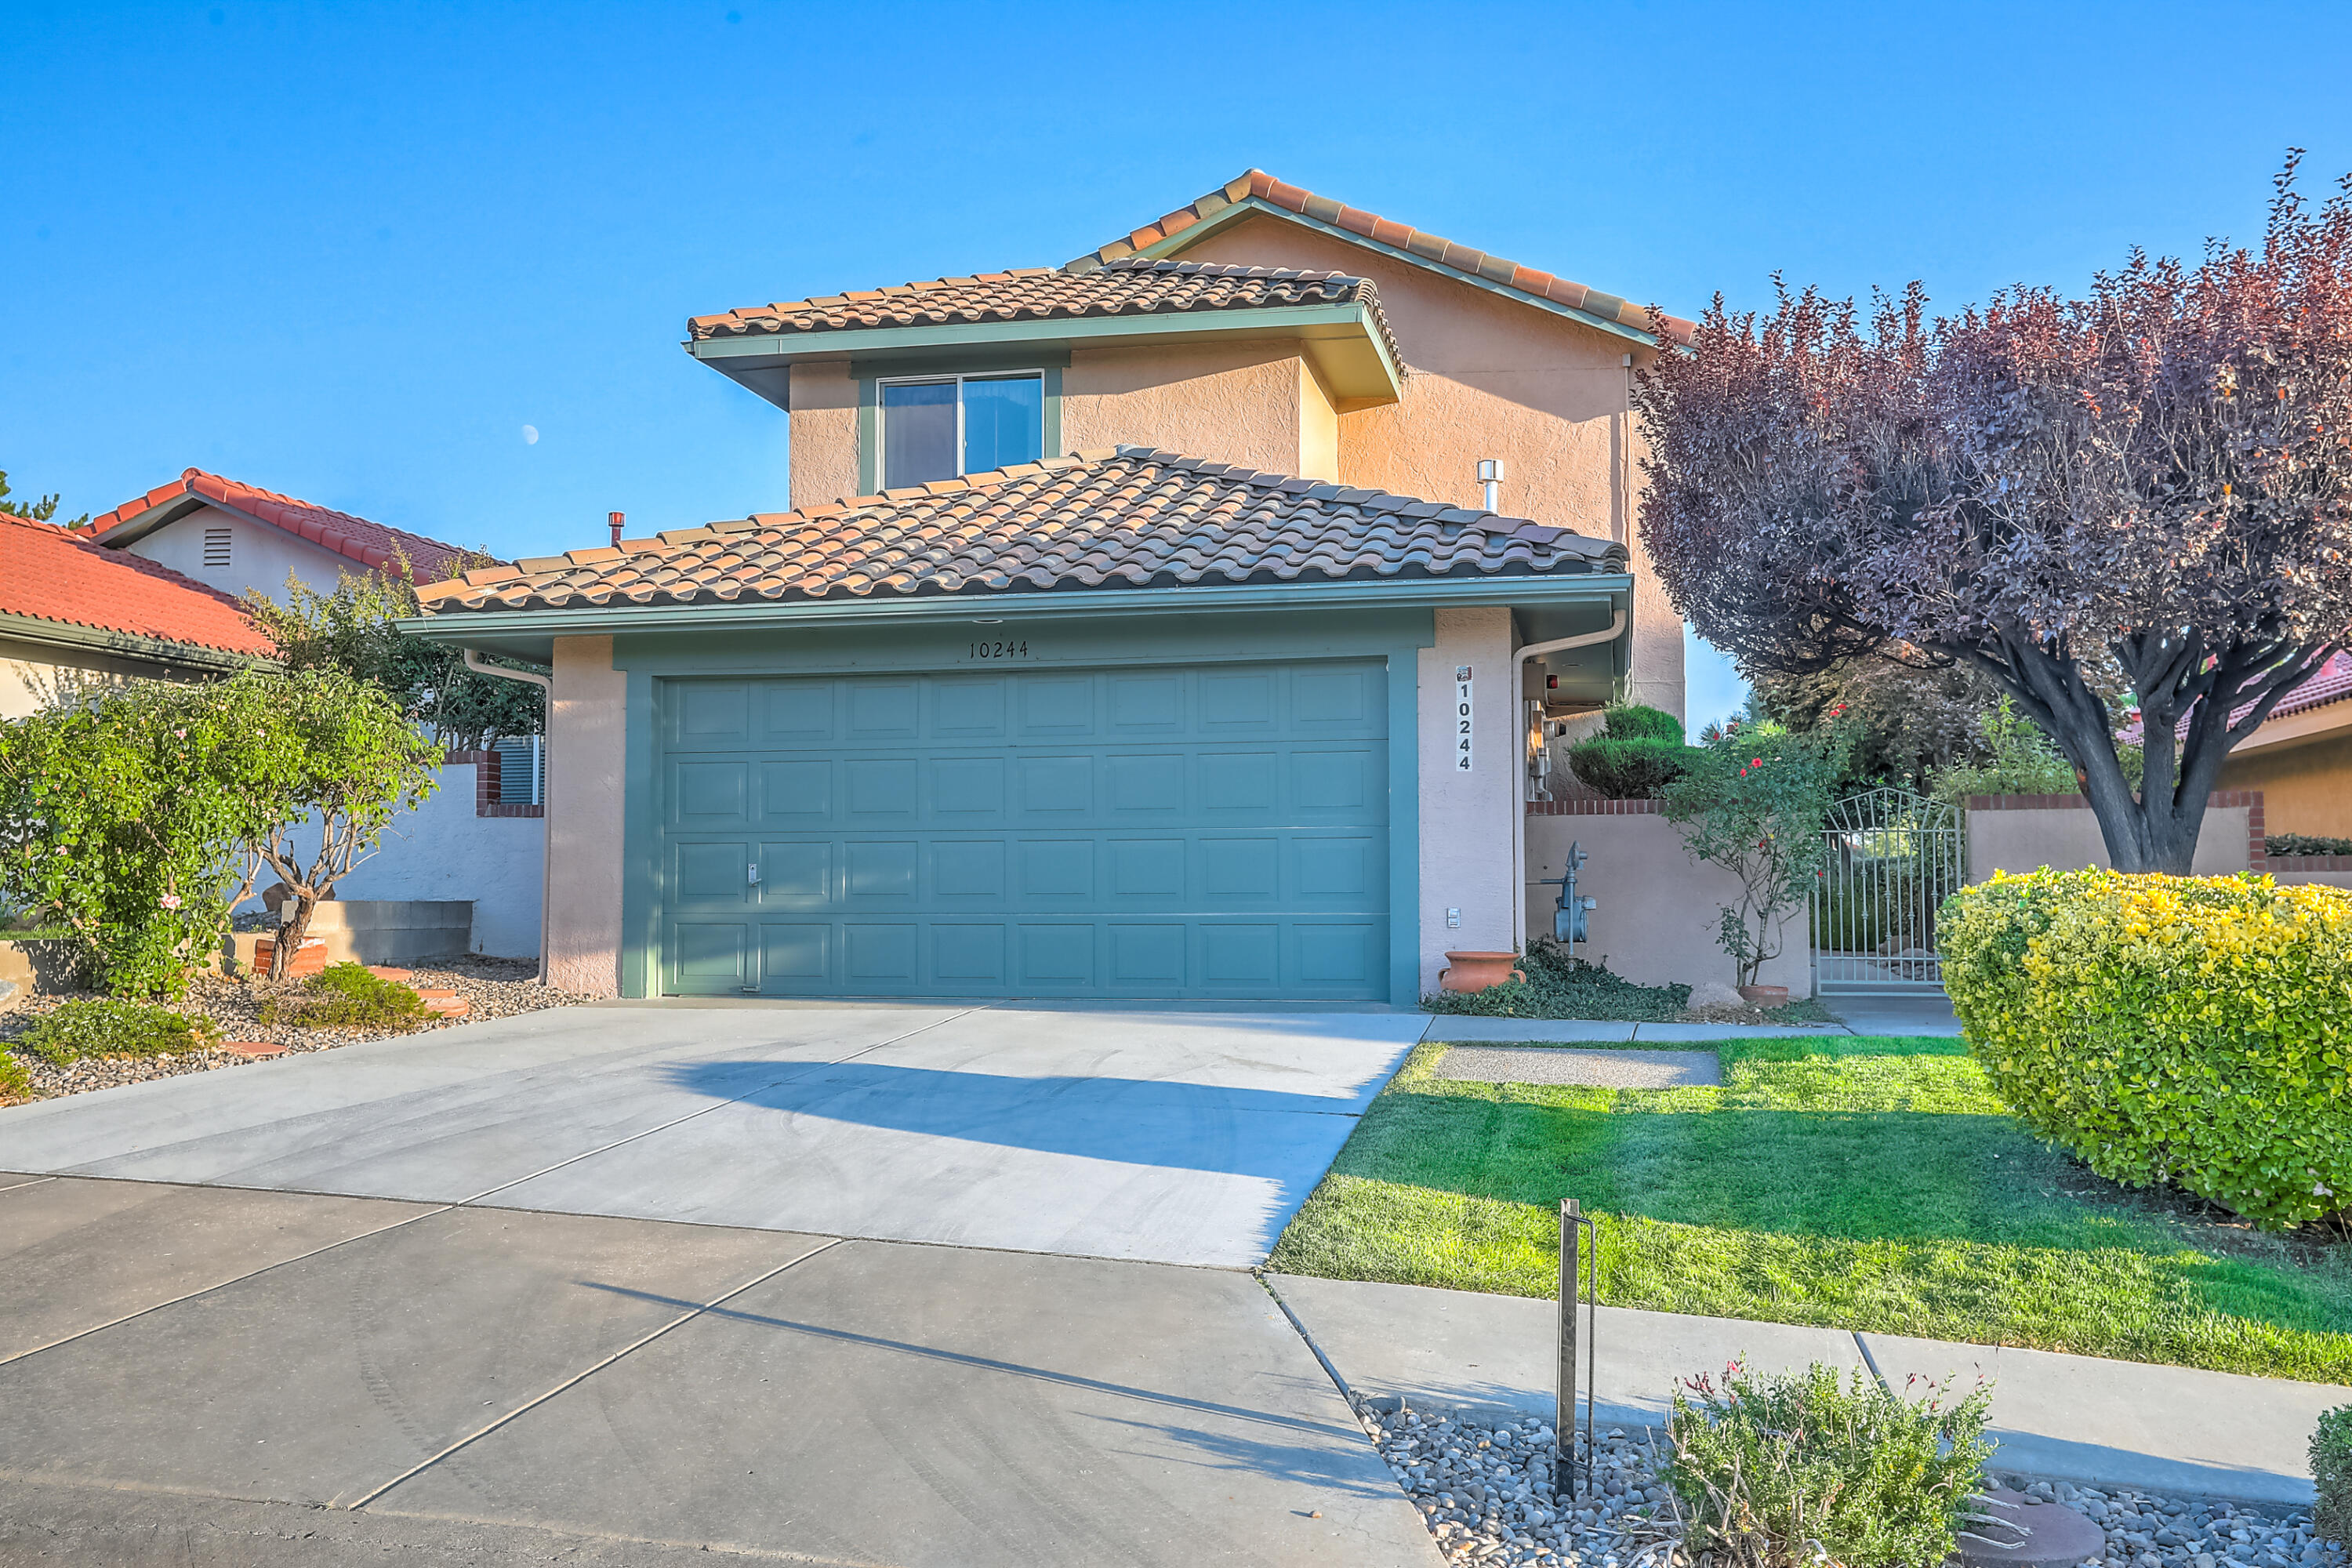 This lovely home is in the desirable northeast heights of Albuquerque. There is a light and bright 3 bedroom, 3 bathroom floor plan and the home has tons of updates.  Brand new stainless steel refrigerator and stainless steel electric stove.  New tile roof in 2018. Newer tankless hot water heater, furnace, windows, and there is Refrigerated air. There are 3 bedrooms and 3 bathrooms and all of the bedrooms are upstairs. The master has a full bath and a large walk in closet. In the kitchen you'll find a breakfast nook and a nice open concept to the 2 living areas with a cozy fireplace.  There is a nice courtyard entrance and a back yard with grass, trees, and a stairway up to a large covered balcony patio.  You can enjoy some great views and relax!